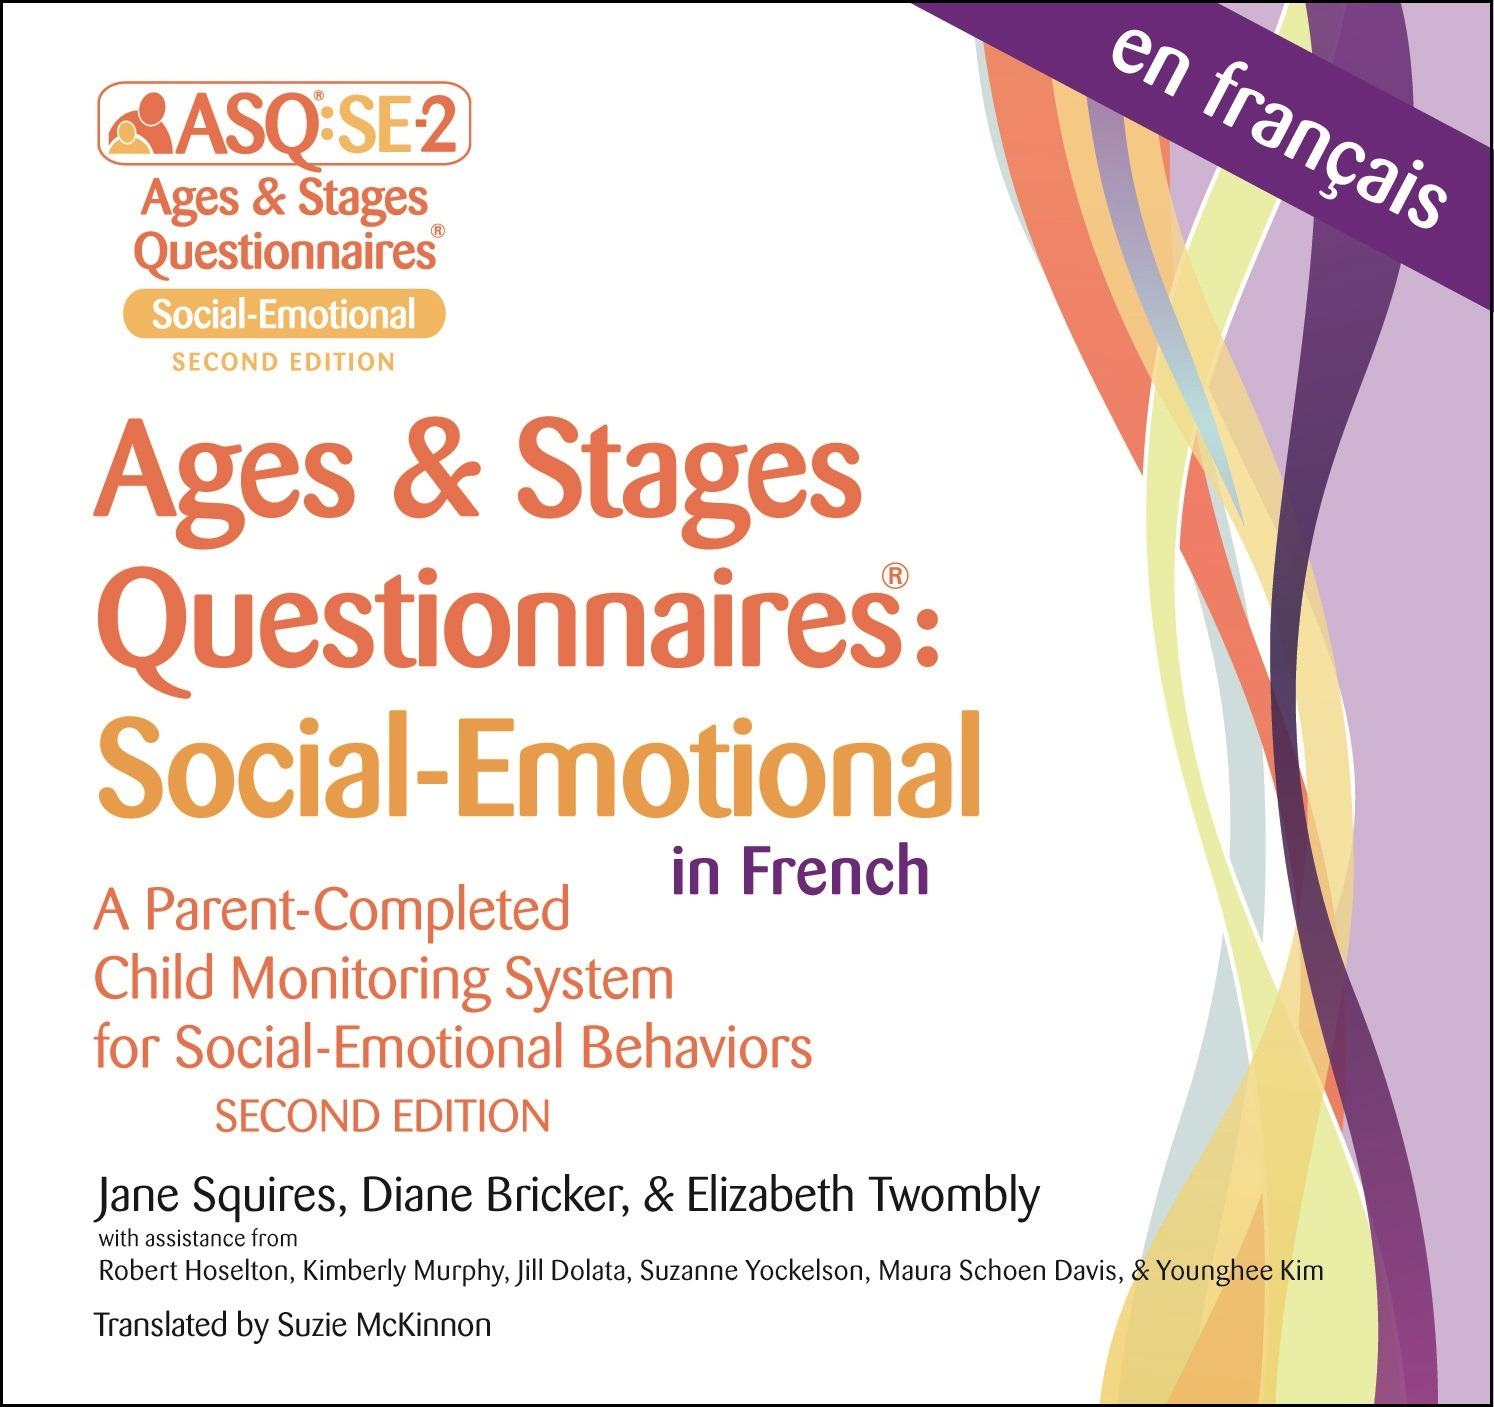 ASQ:SE-2 French Cover